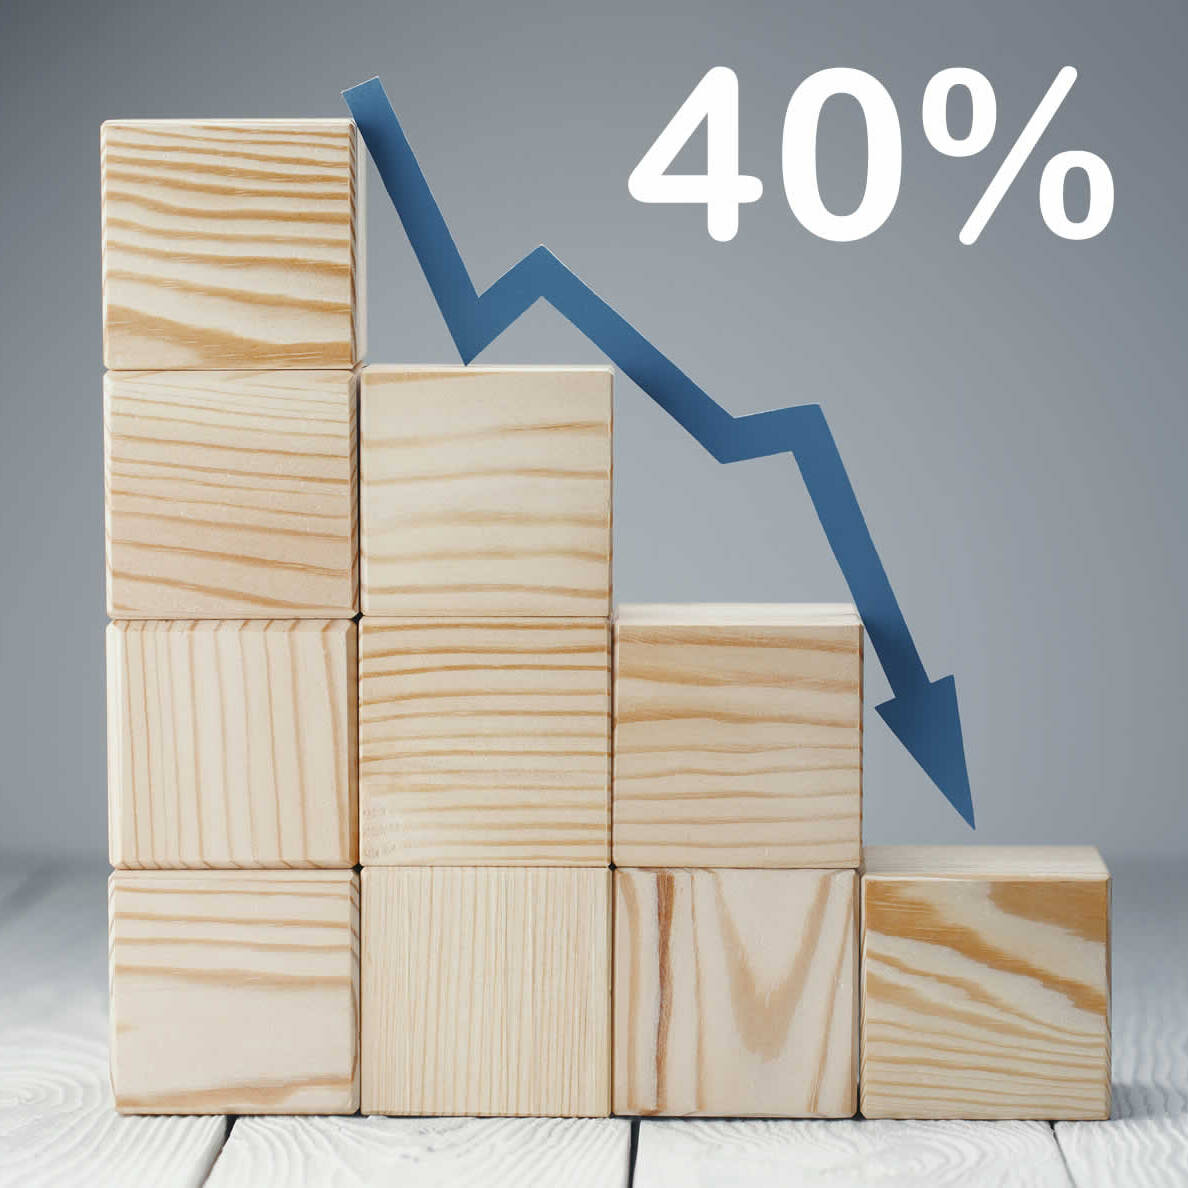 Insolvency is down by 41% despite global pandemic